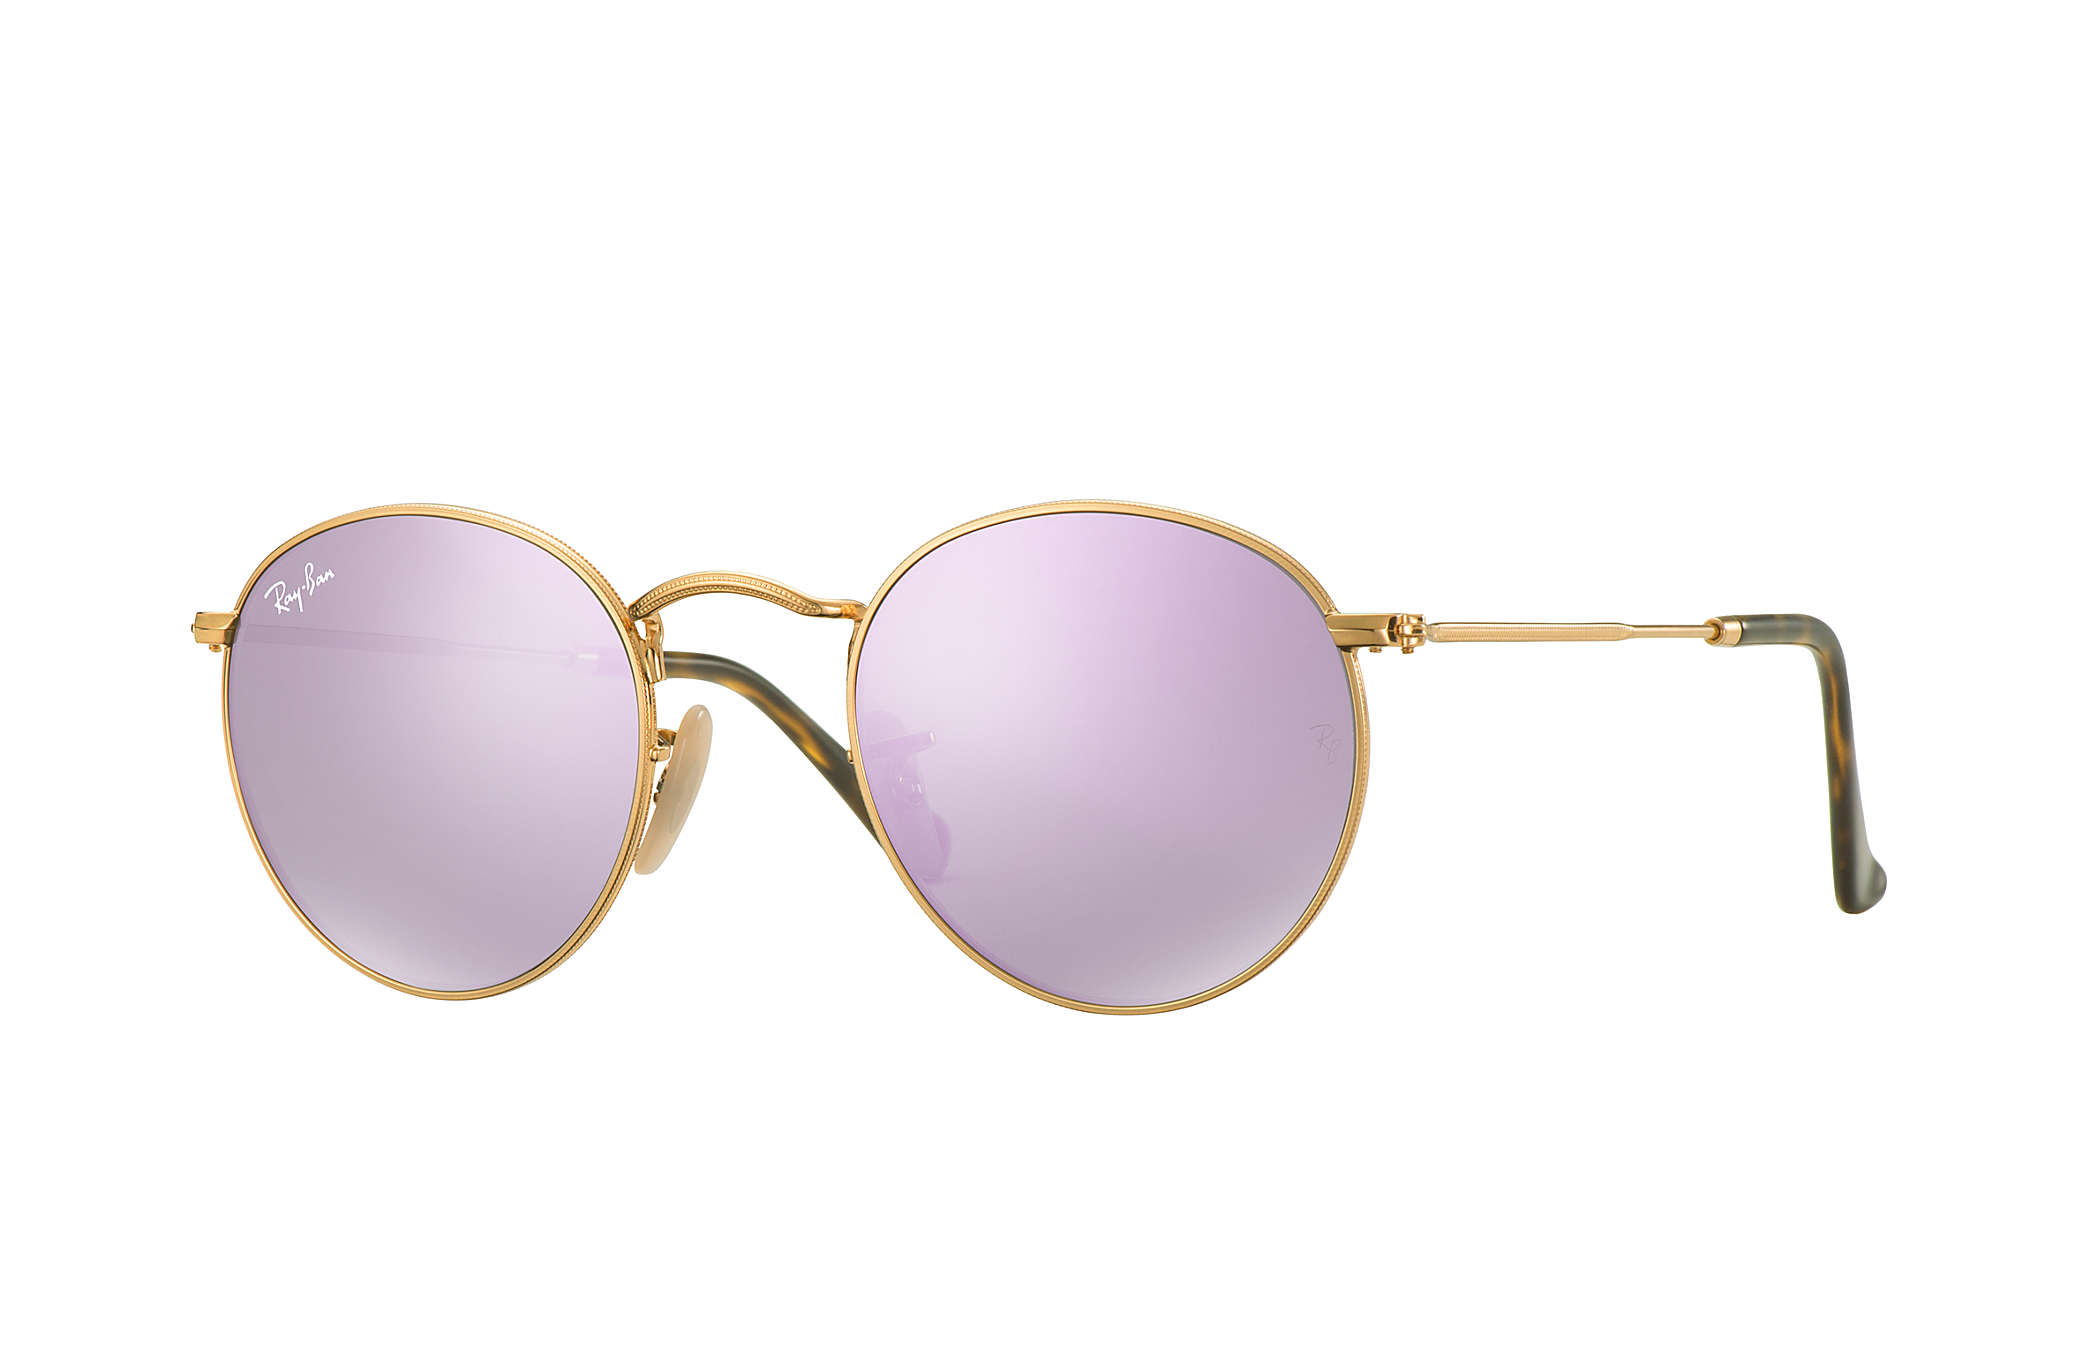 942b27e3716 Details about New Ray Ban RB3447N-001 80-50 Shiny Gold   Wisteria Flash  50mm Sunglasses